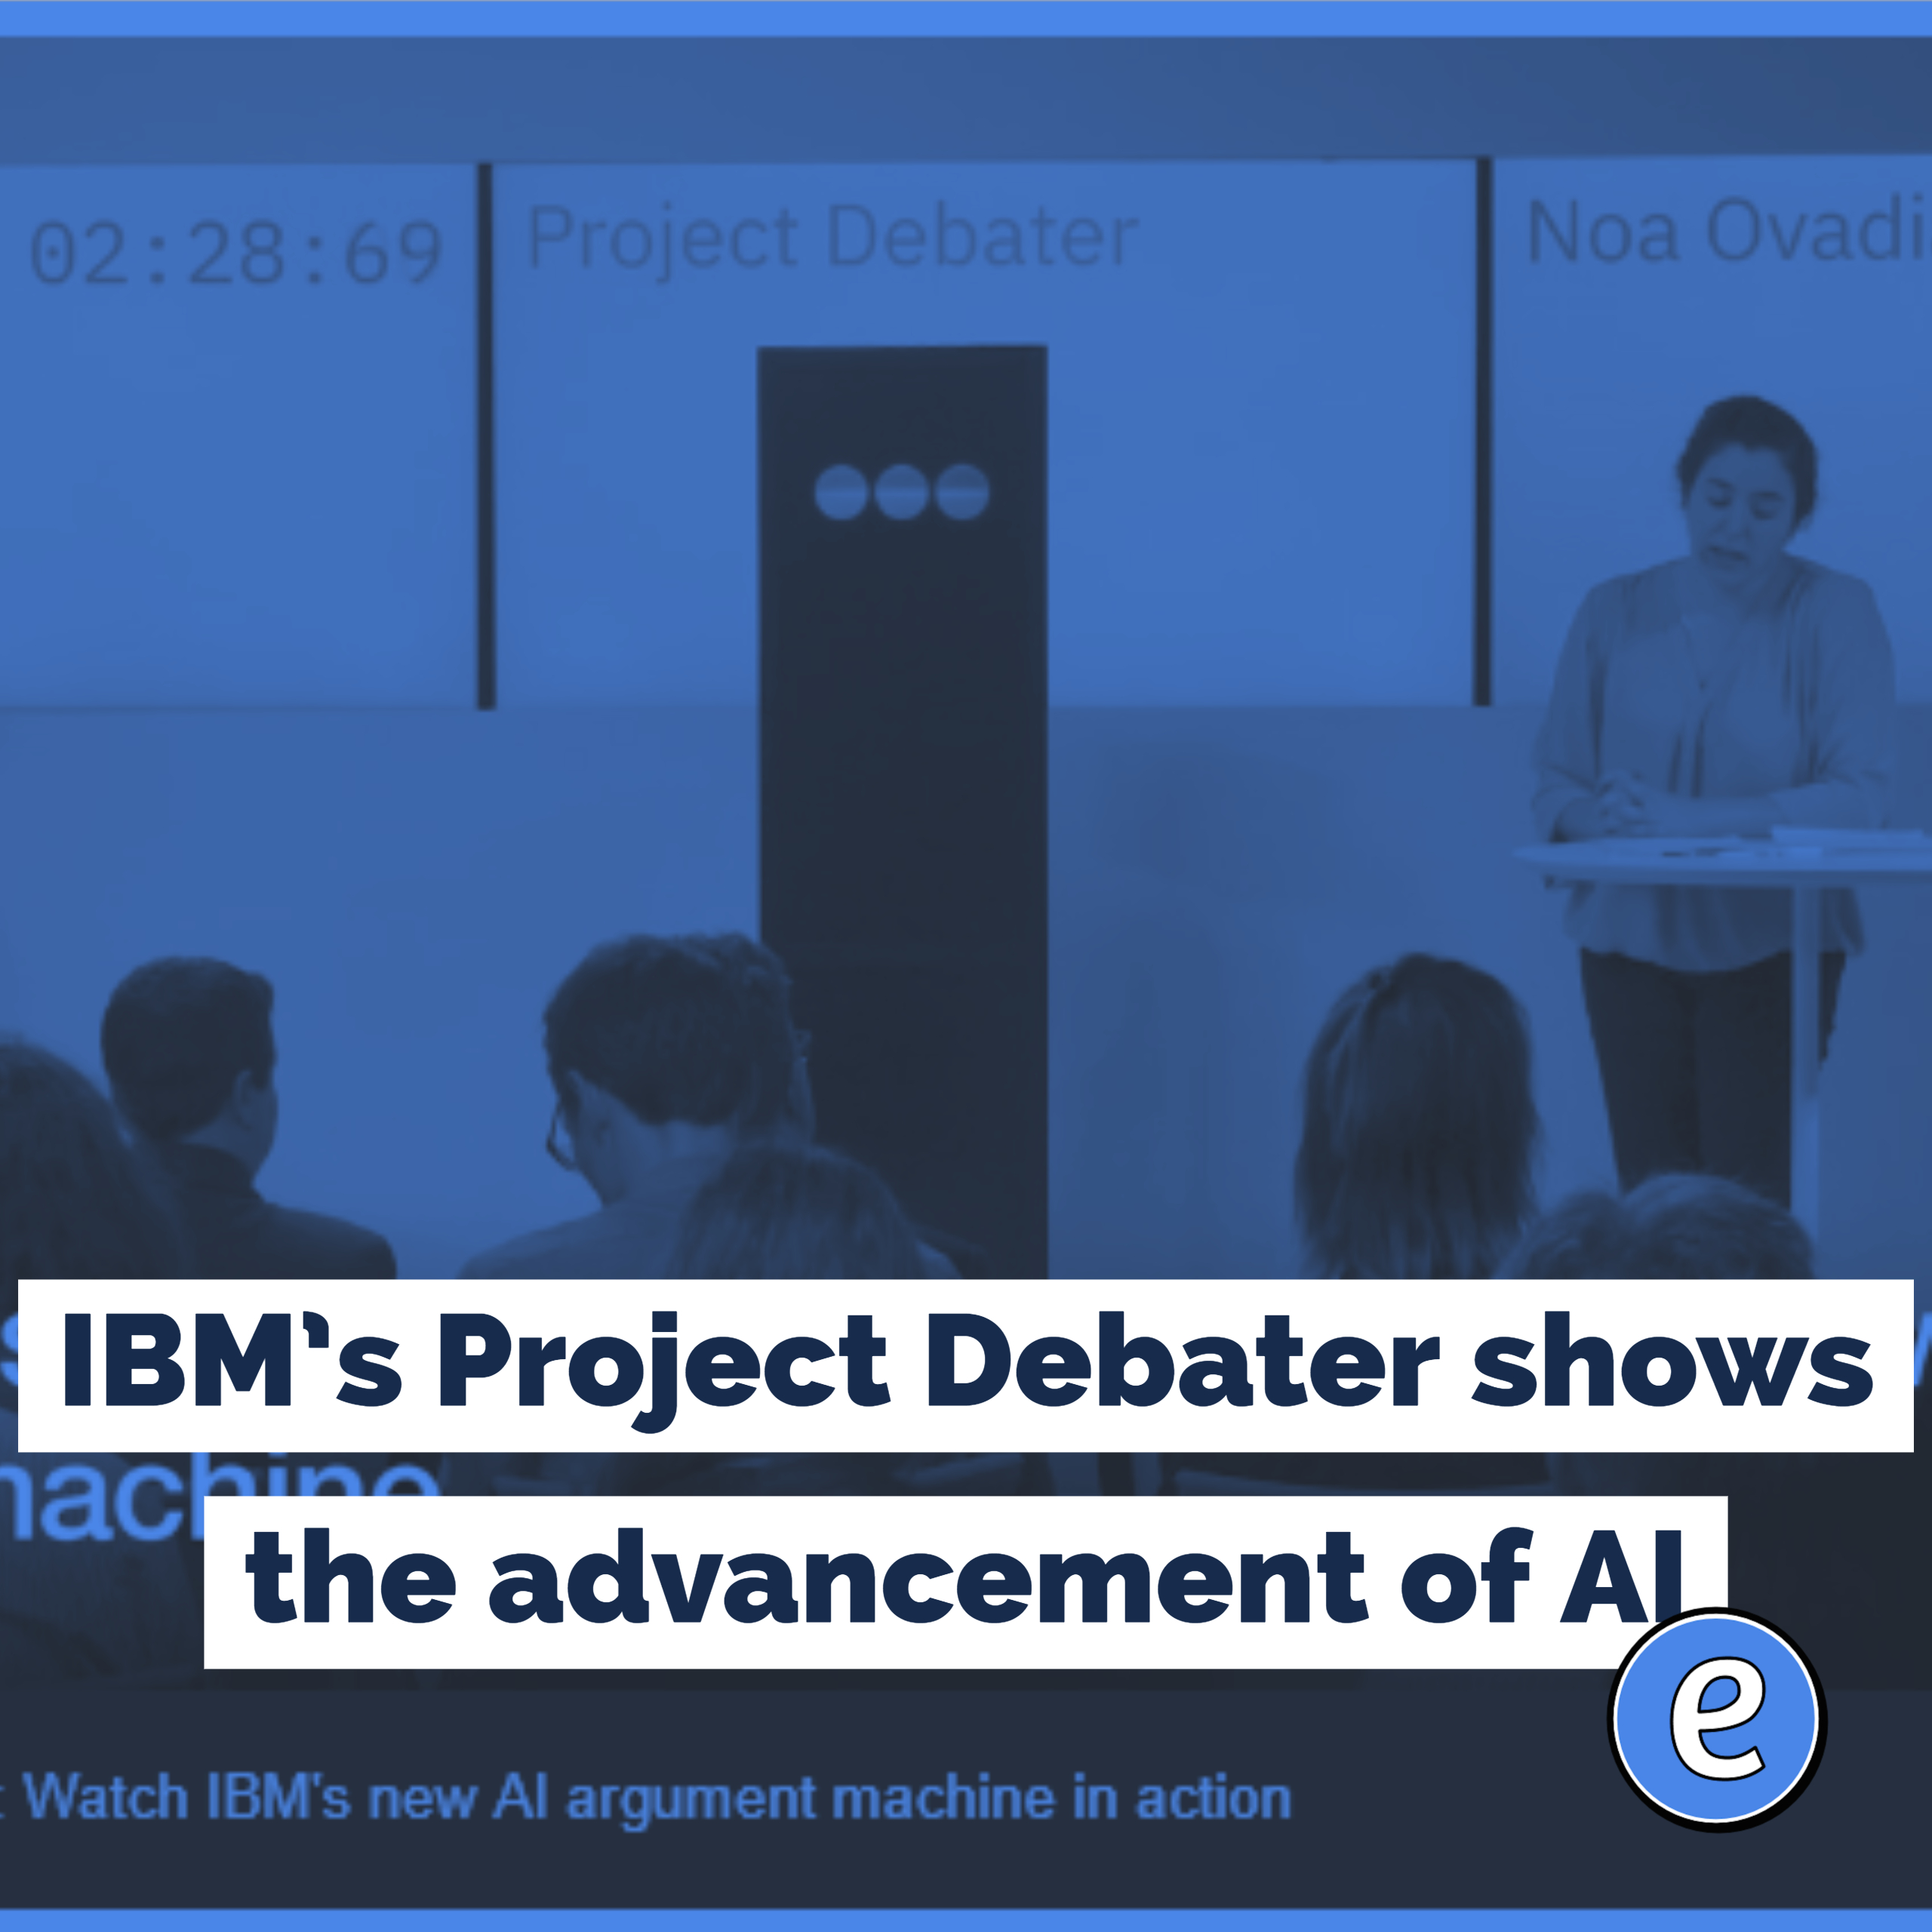 IBM's Project Debater shows the advancement of AI